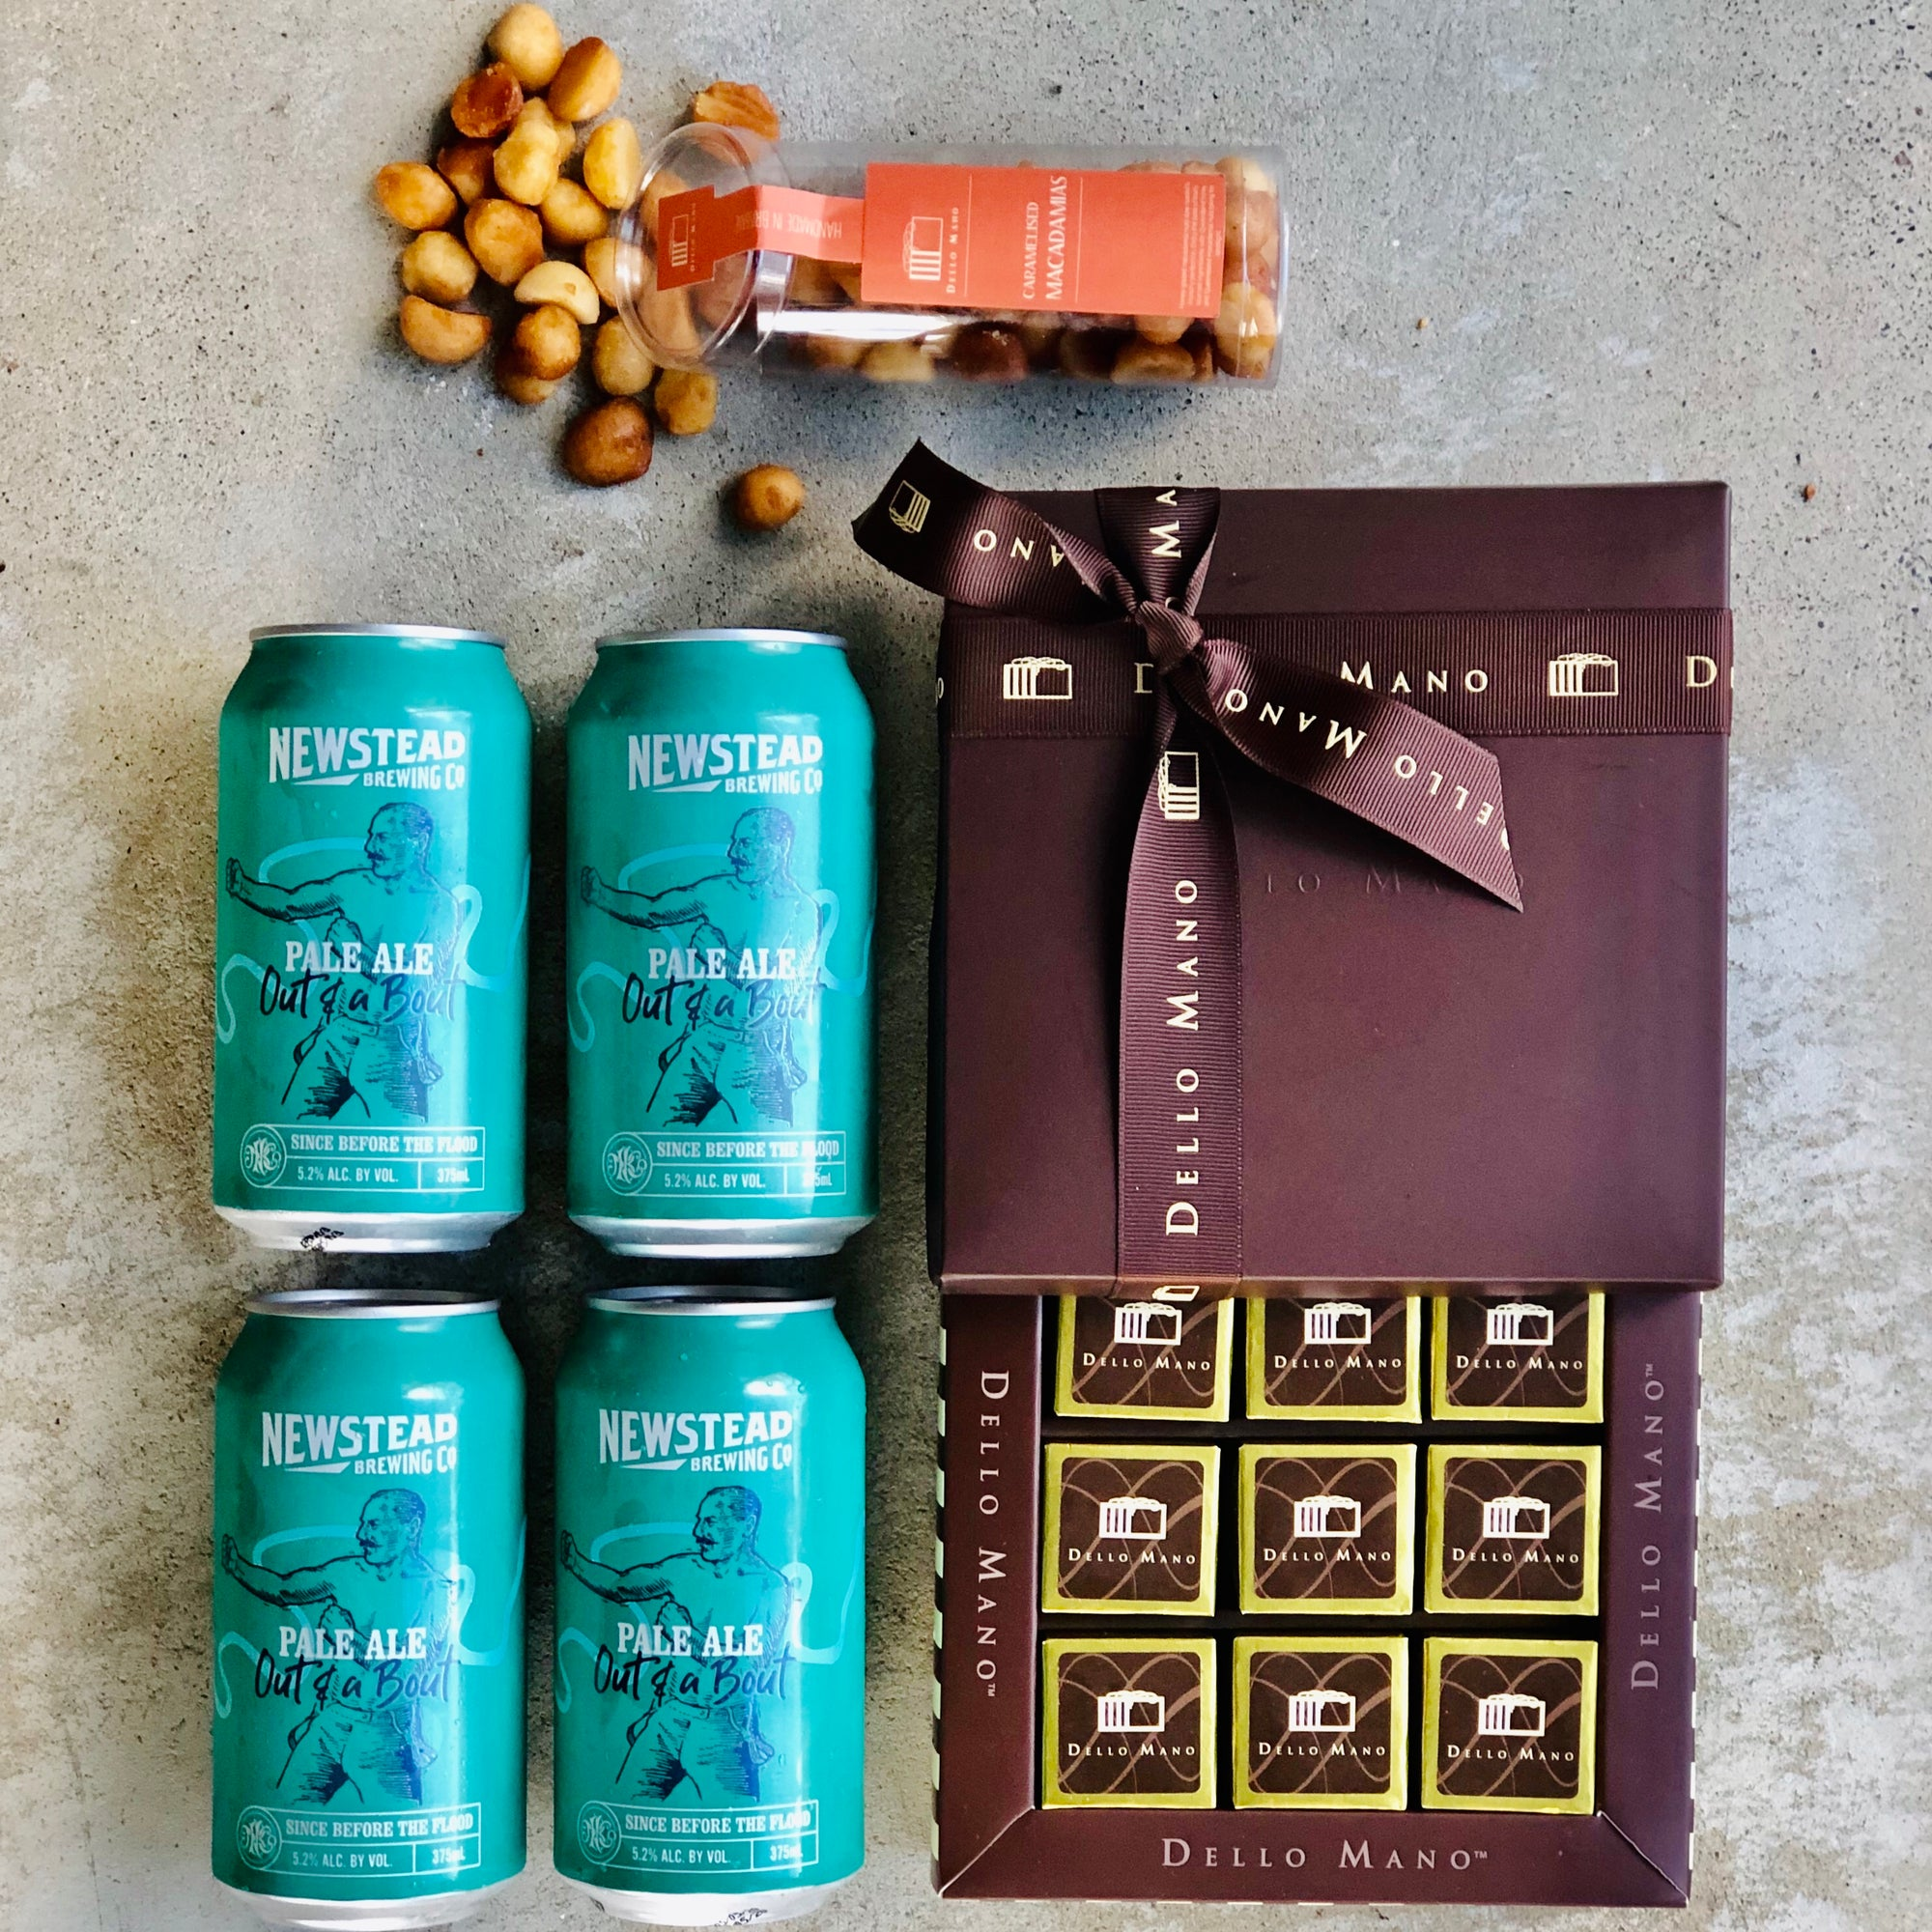 Open Brownie Gift Box with 4 cans of beer and open tube of macadamia nuts spilling onto concrete